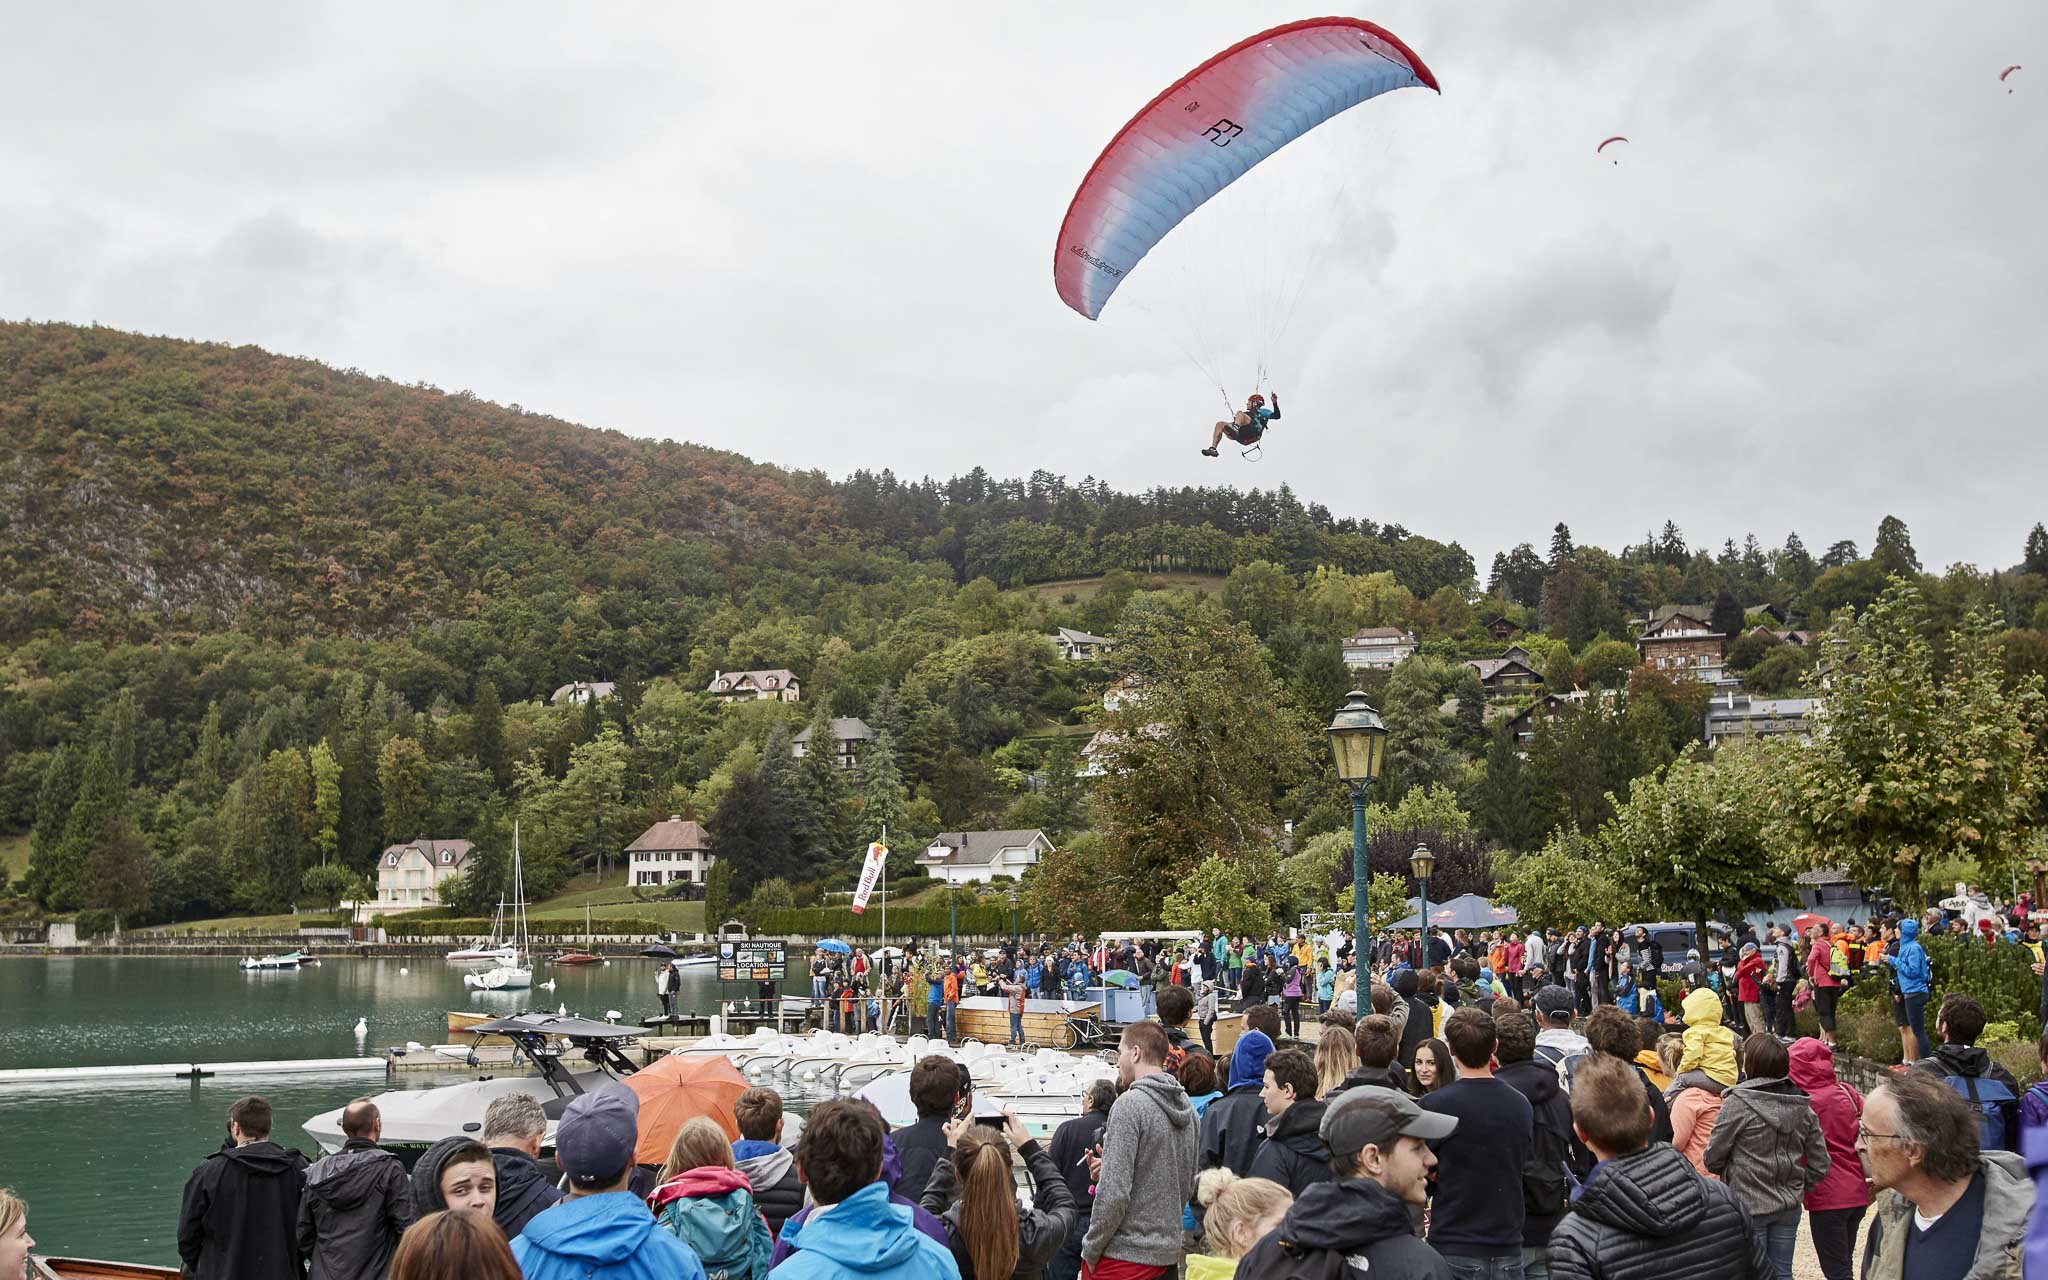 Participants paraglide above the crowd at the Red Bull Elements in Talloires, France on September 17th, 2016. // Tim Lloyd / Red Bull Content Pool // P-20160917-01655 // Usage for editorial use only // Please go to www.redbullcontentpool.com for further information. //